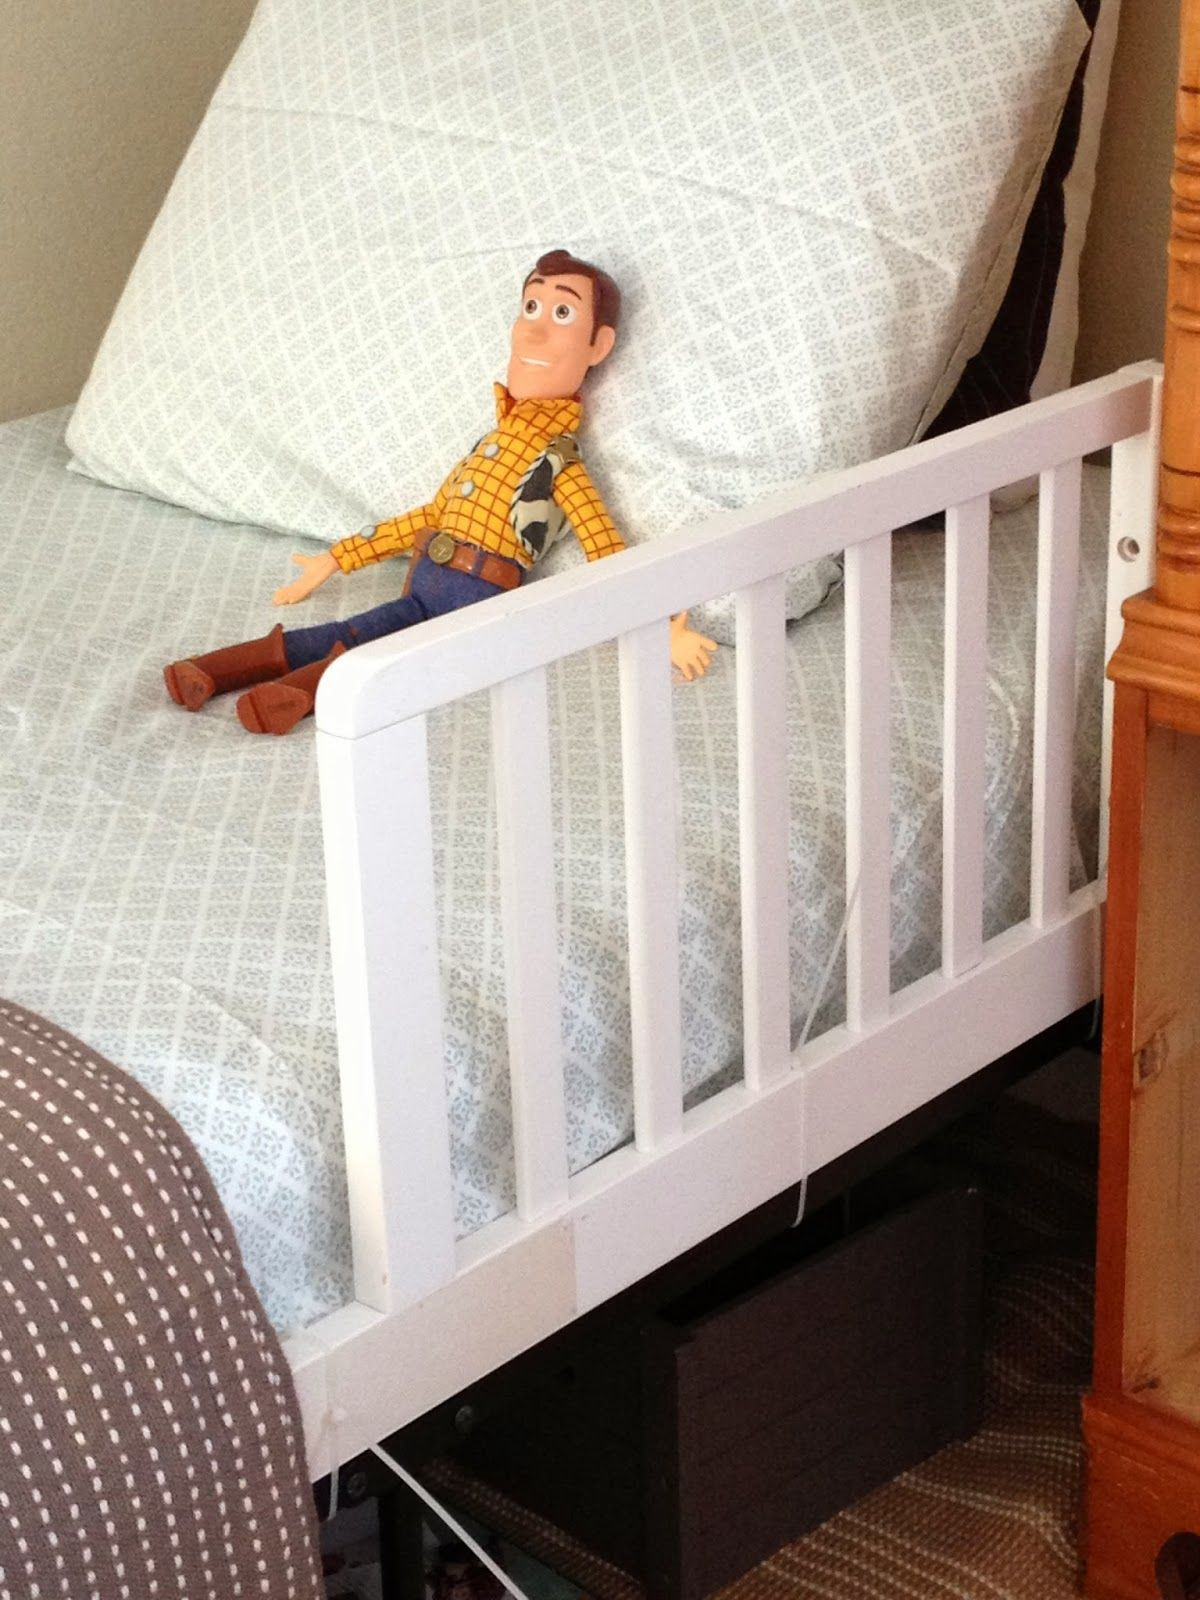 Best ideas about DIY Bed Rail . Save or Pin Diy safety rail for a toddler bed Now.